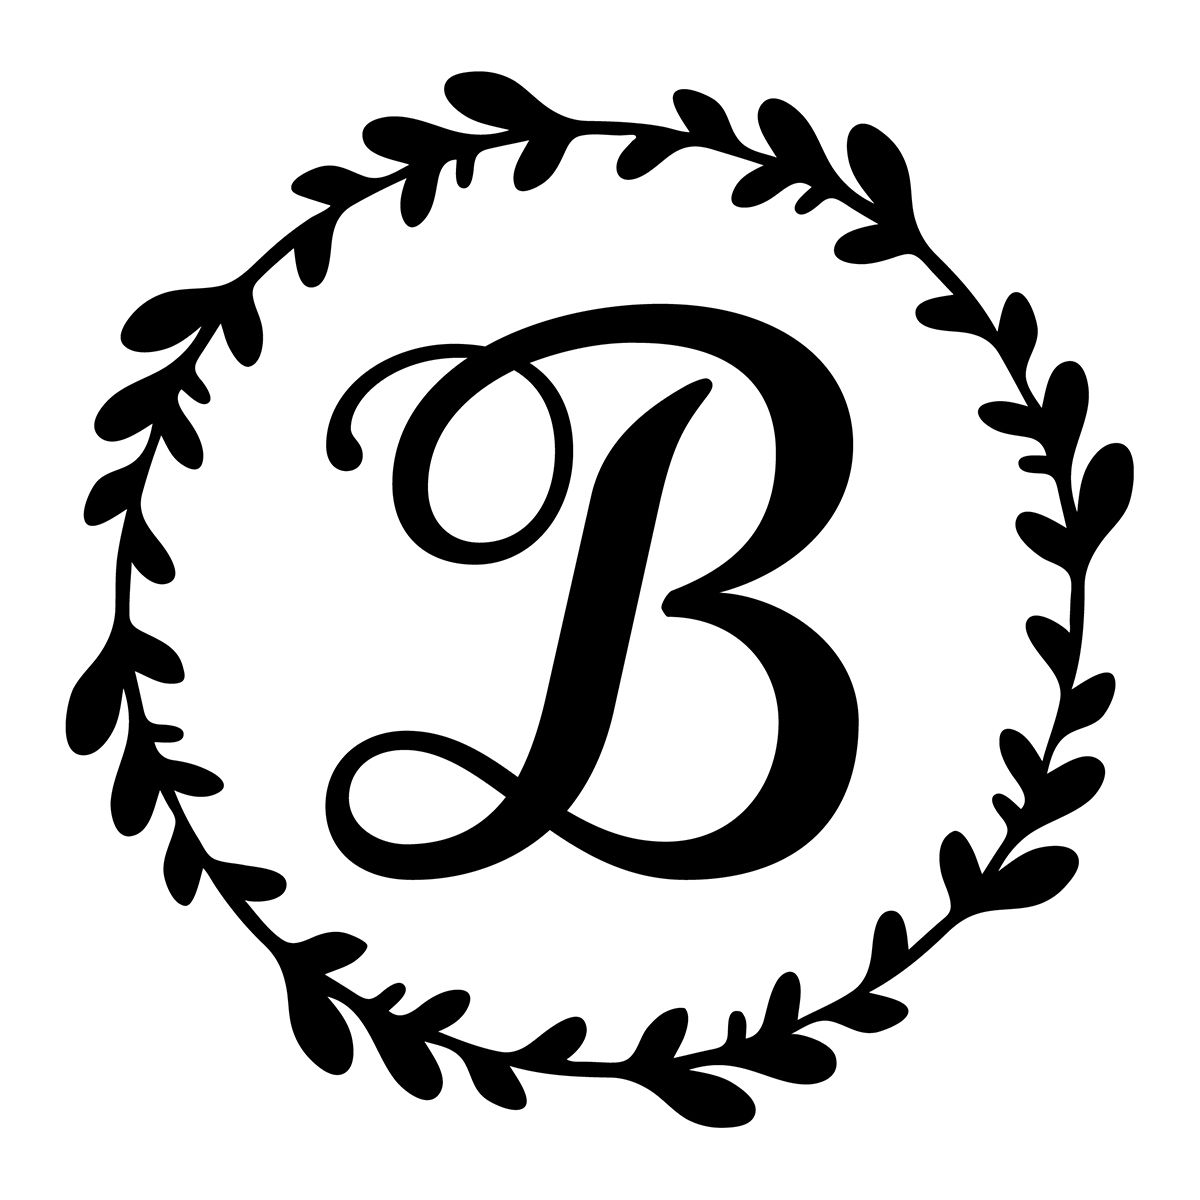 Library Of Vinyl M Monogram Initial Picture Free Stock